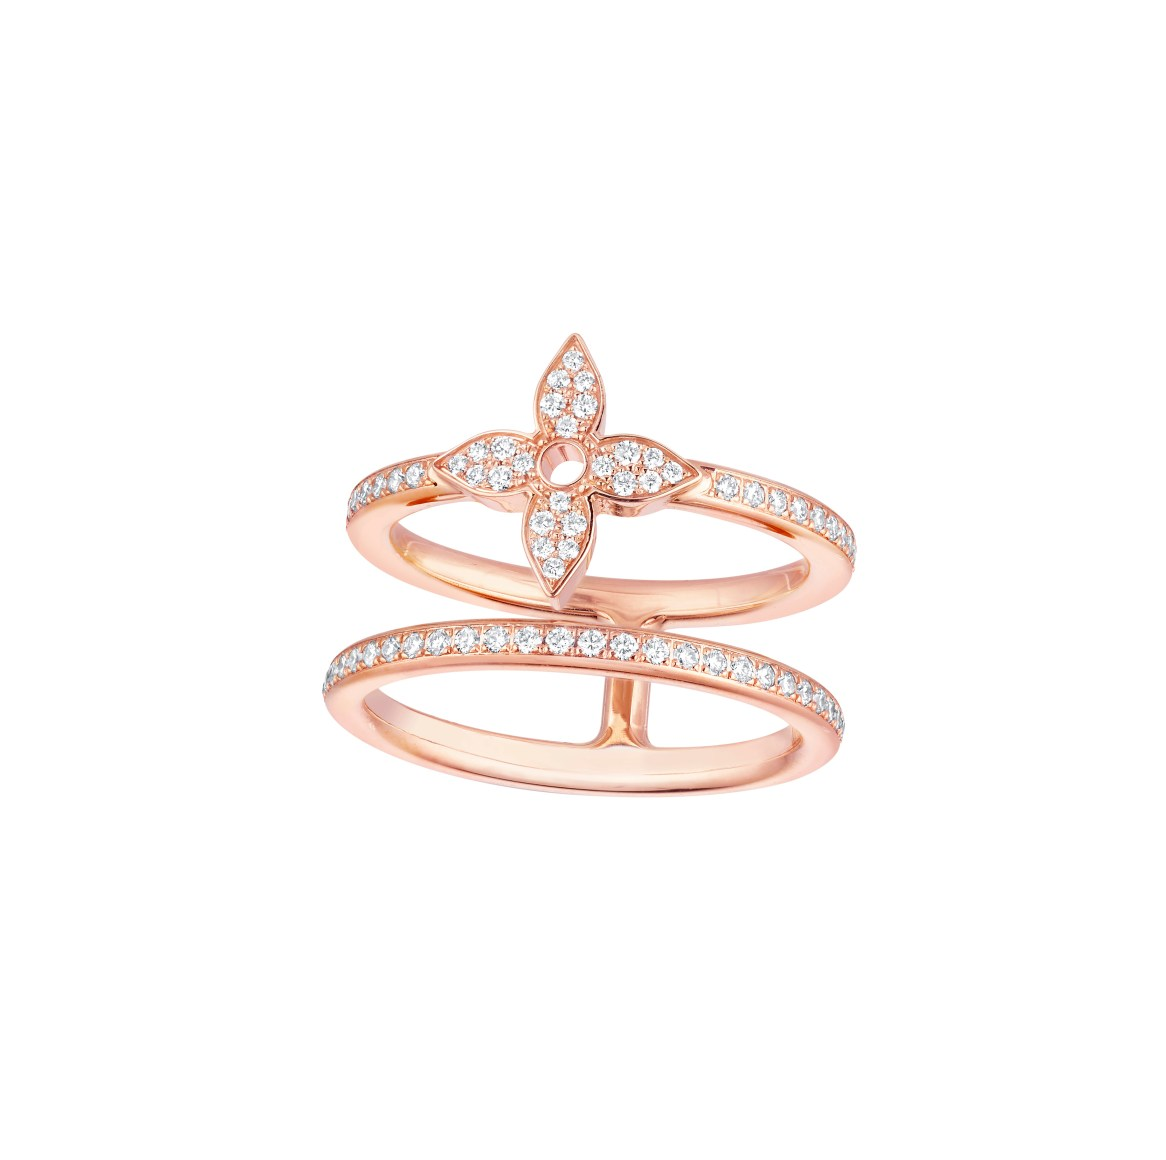 Q9N42F_Bague Idylle Blossom Diamant OR